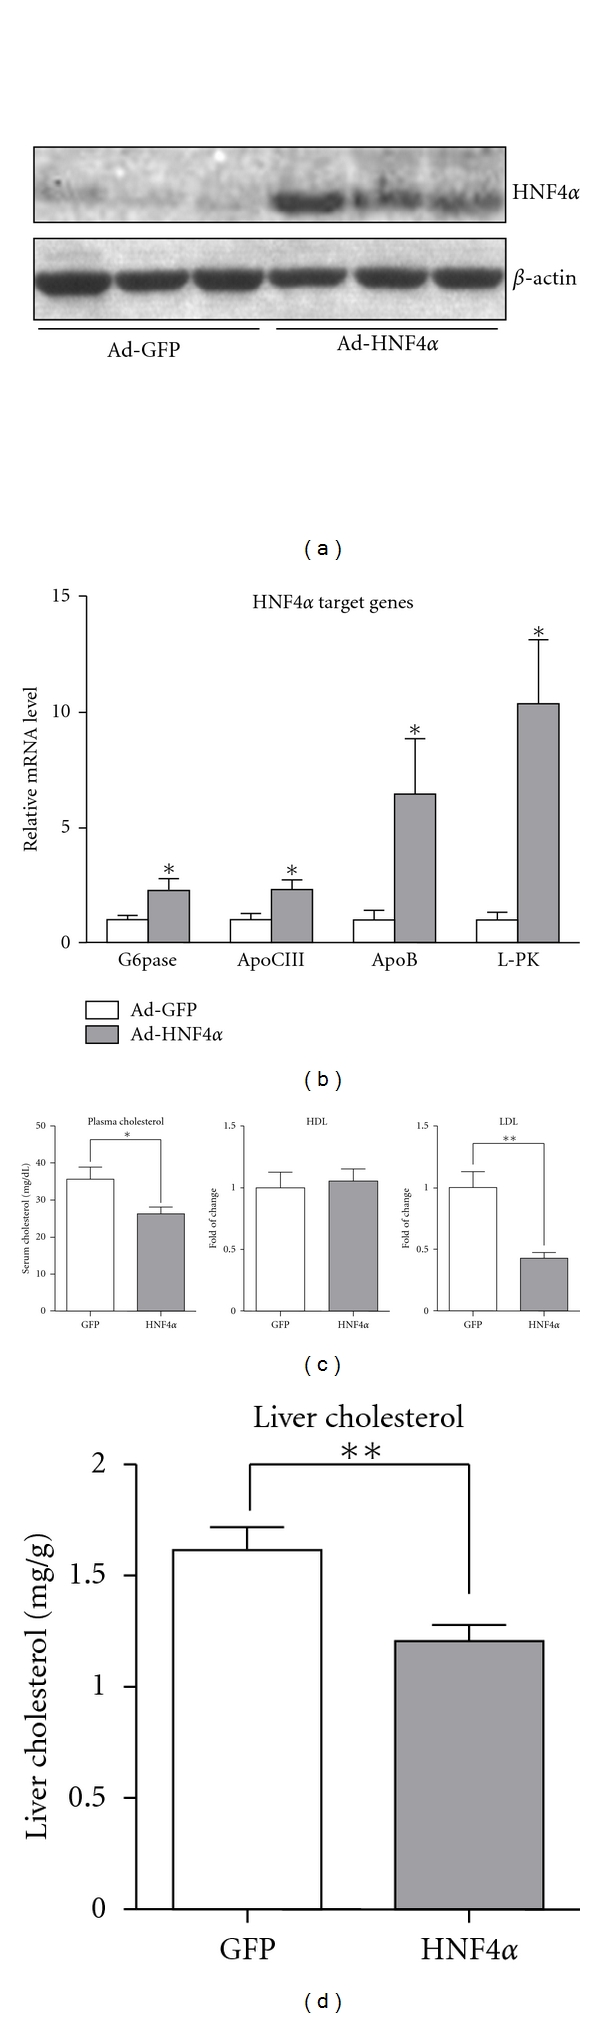 Hepatic overexpression of HNF4 α  in rats decreased cholesterol levels in both plasma and liver. Rats were intravenously injected with Ad-HNF4 α  or Ad-GFP ( n  = 6), then killed 7 days post-infection. (a) Liver extracts were used to determine protein expression by western blot analysis with antibodies against HNF4 α  or  β -actin. (b) Relative mRNA levels of hepatic HNF4 α  target genes, including G6p, Apoc3, Apob, and L-pk, were examined by qPCR. (c) Plasma cholesterol, high-density lipoprotein cholesterol (HDL-C), and low-density lipoprotein cholesterol (LDL-C) levels were determined. (d) Liver cholesterol was  measured in lipid content of rat liver. Data are mean ± SEM, * P